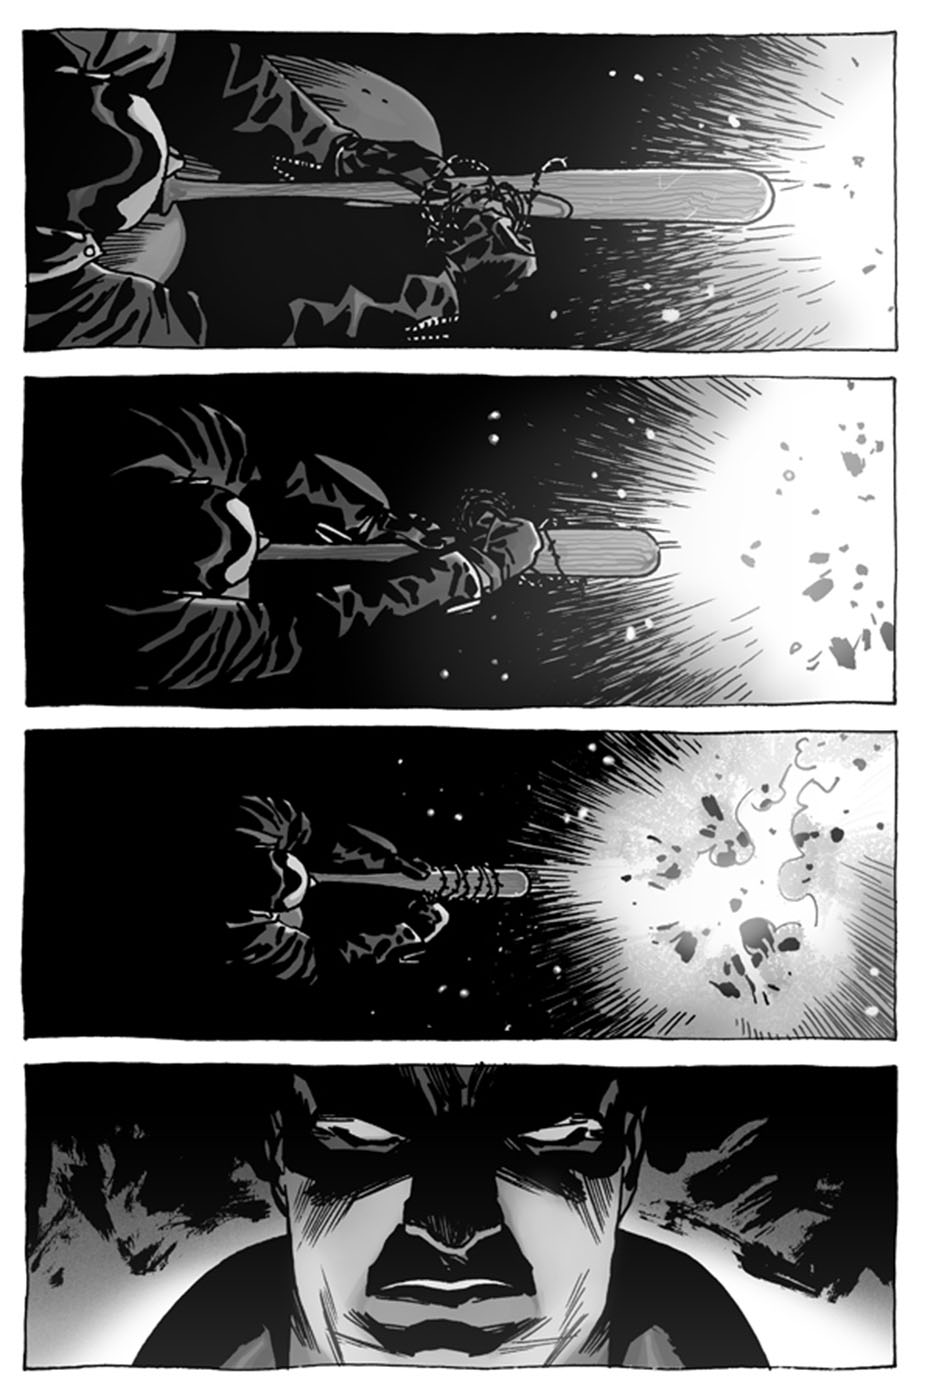 WD_Negan_1_final (1)-EMBED